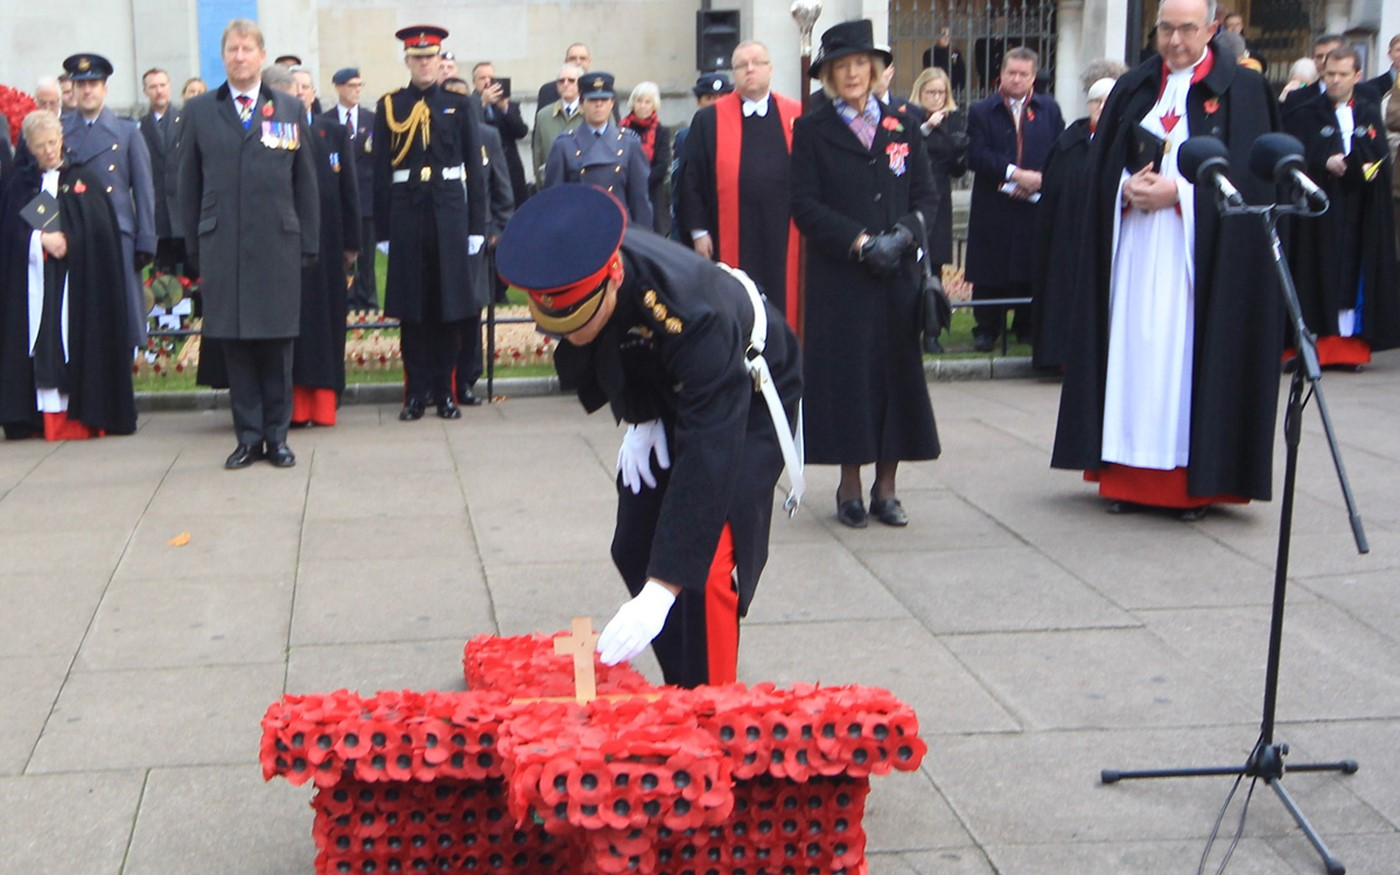 Prince Harry lays his Memorial Cross